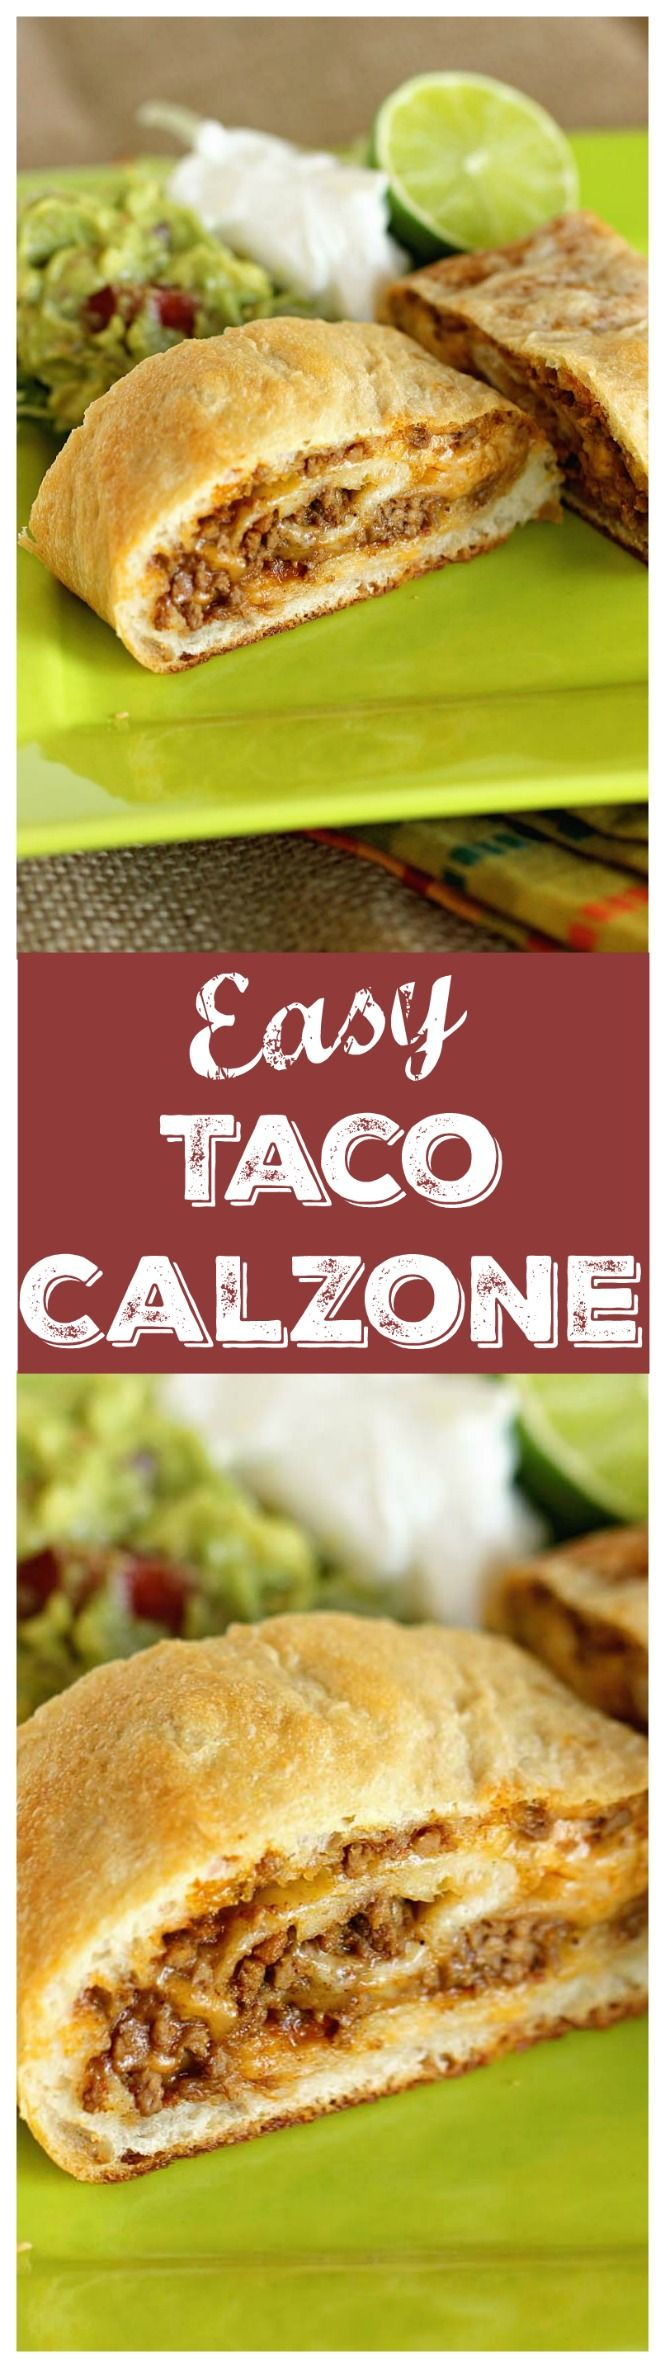 Easy Taco Calzone - A quick and easy weeknight dinner idea using refrigerated pizza dough, taco ground beef filling, and cheese! It's a super kid-friendly meal idea!